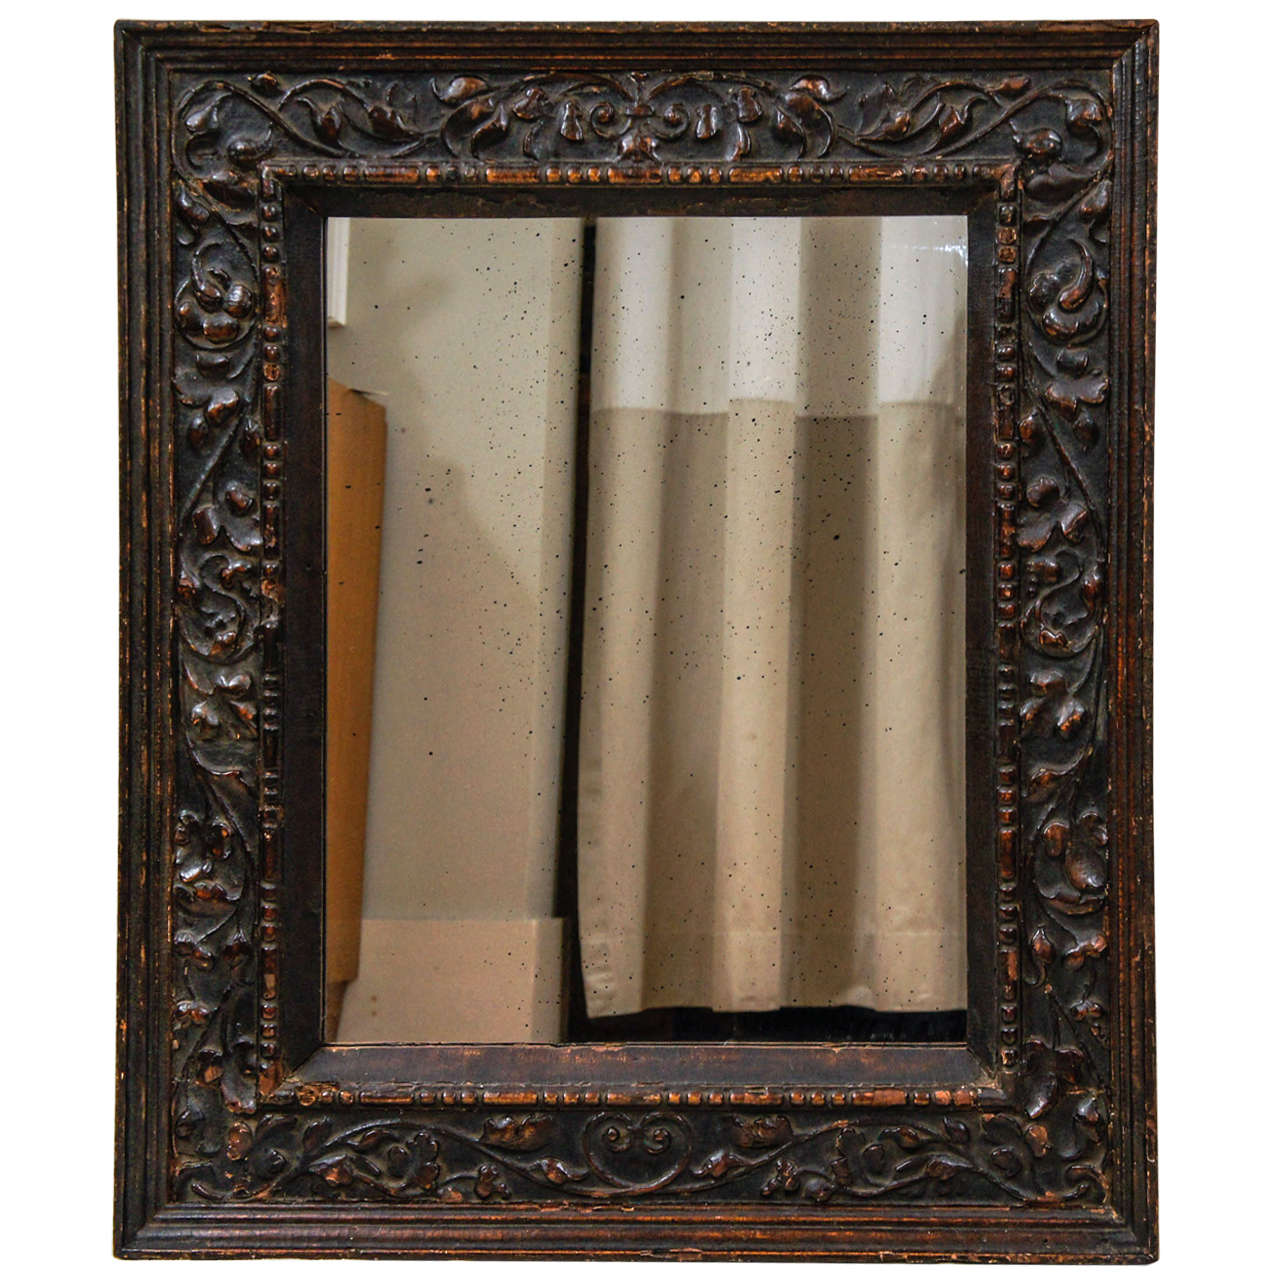 18th Century Italian Carved Wood Mirror Frame at 1stdibs